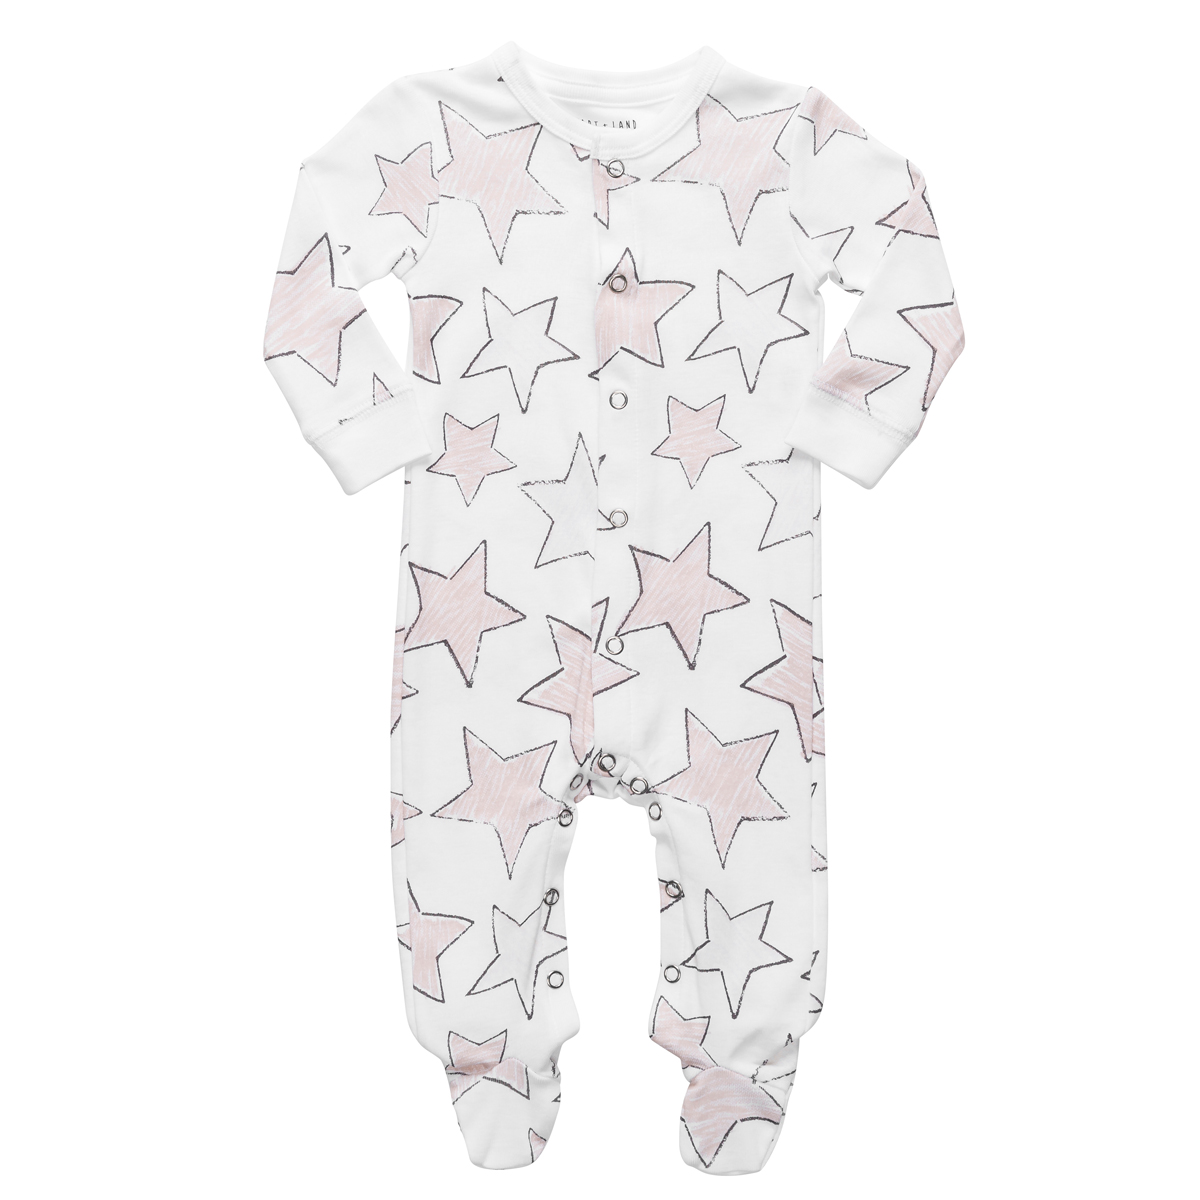 Hart + Land Long Sleeve Footie in Large Star Print in Sepia Rose